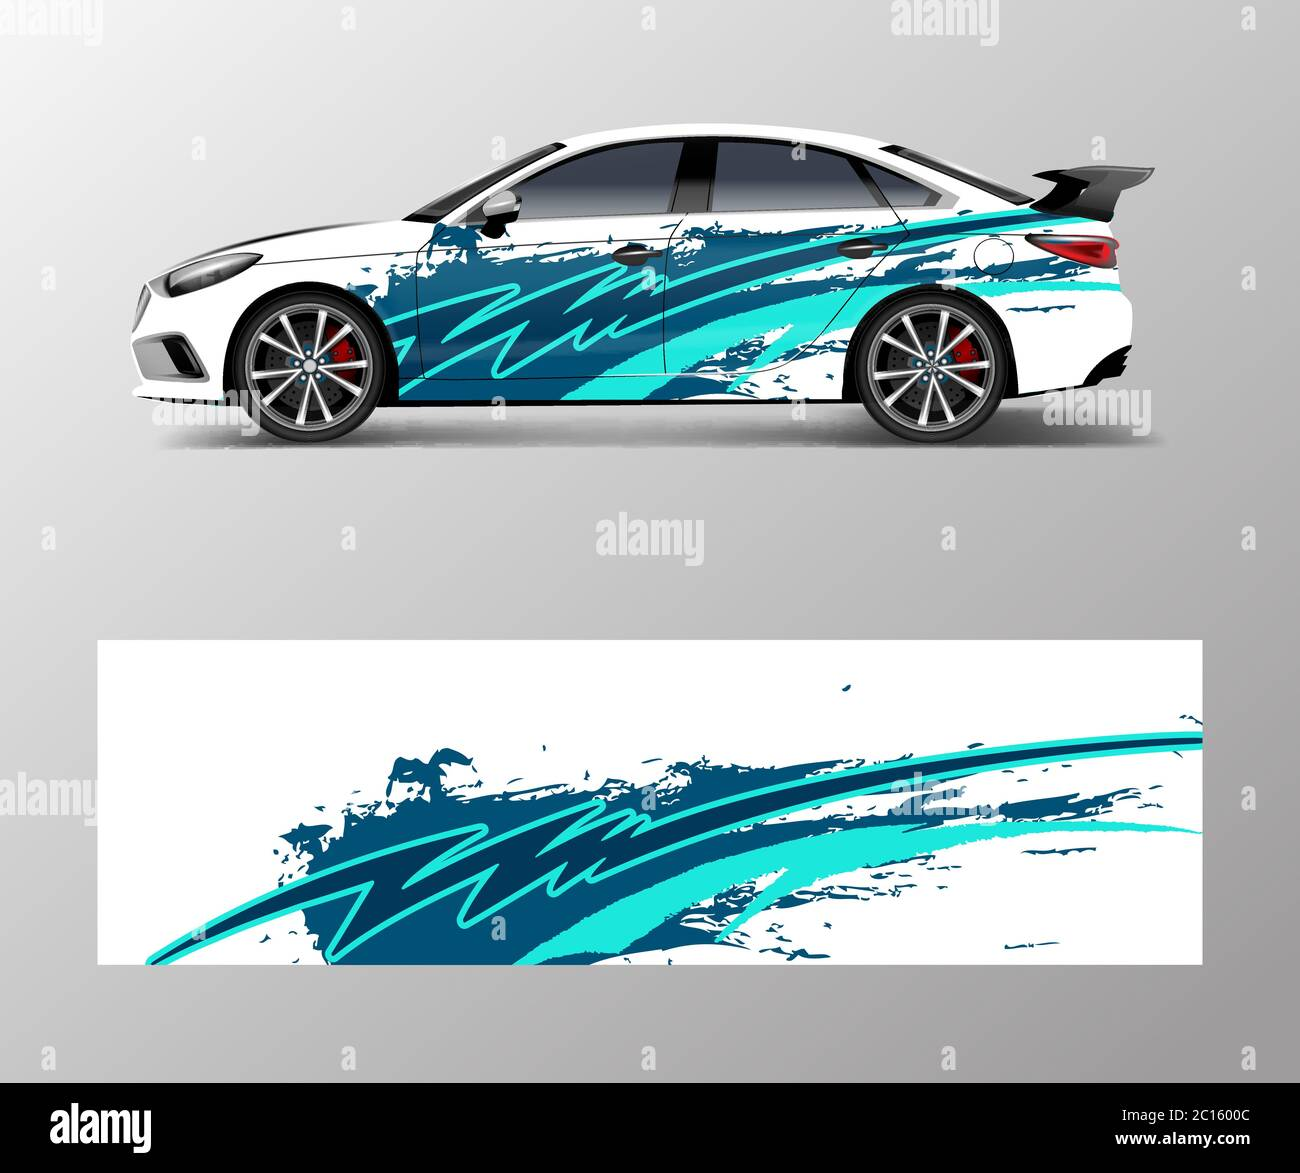 Car Sticker Design High Resolution Stock Photography And Images Alamy